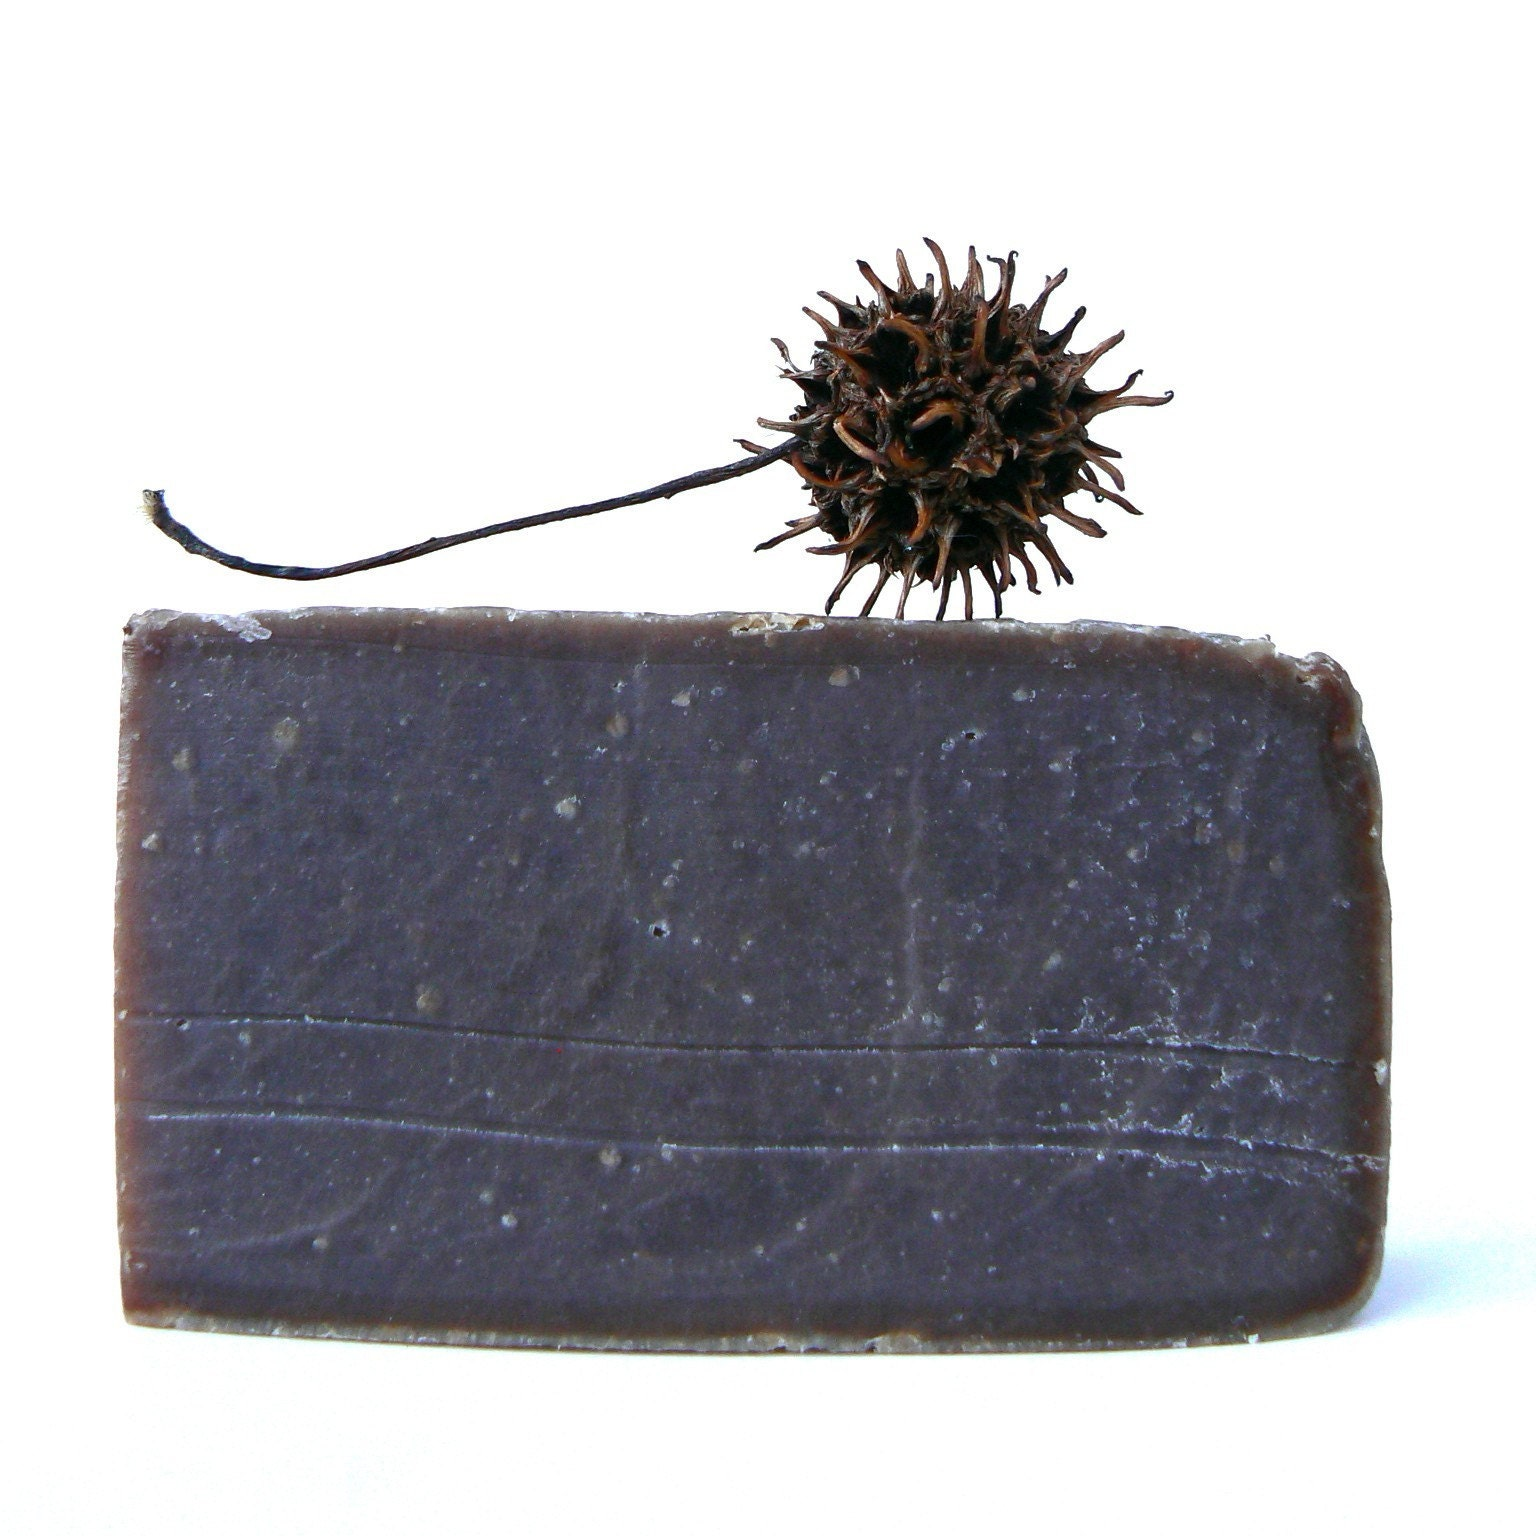 Vanilla Dream soap bar - 4 oz